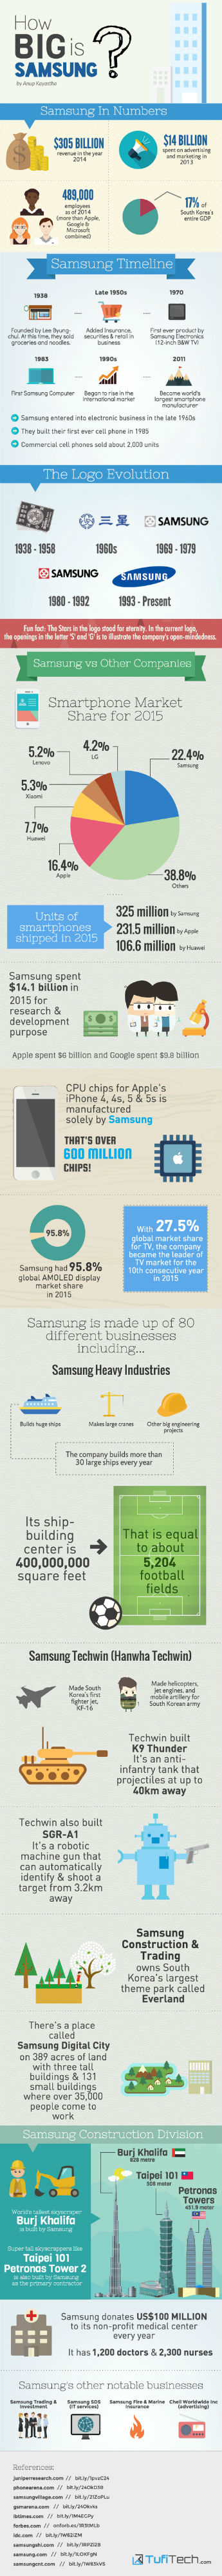 Infographic Just How Big Is Samsung